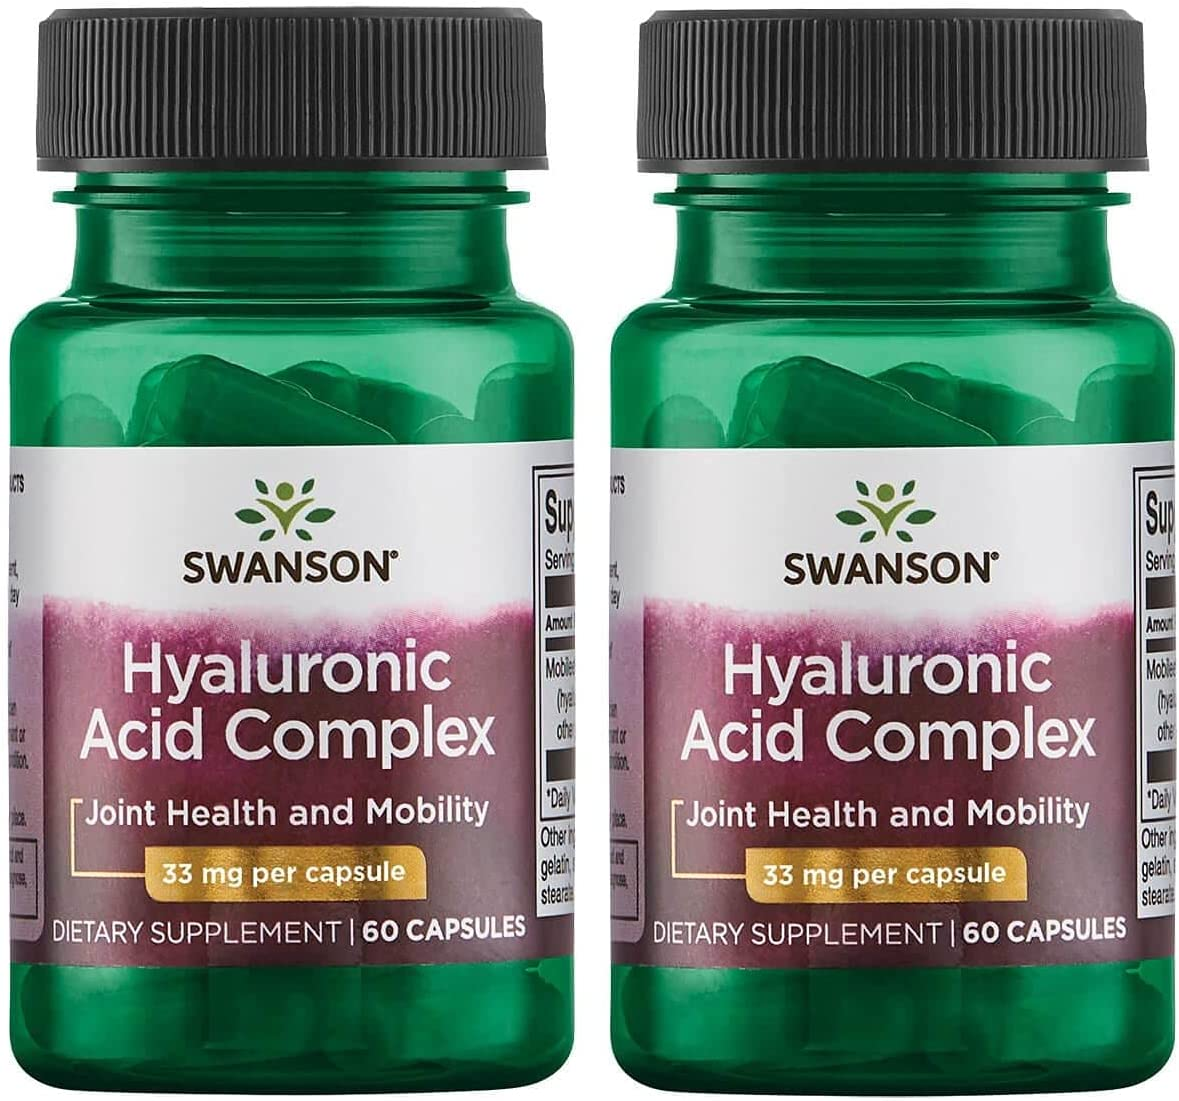 Swanson Hyaluronic Acid Complex 33 OFFicial shop Selling mg 60 Pack 2 Caps